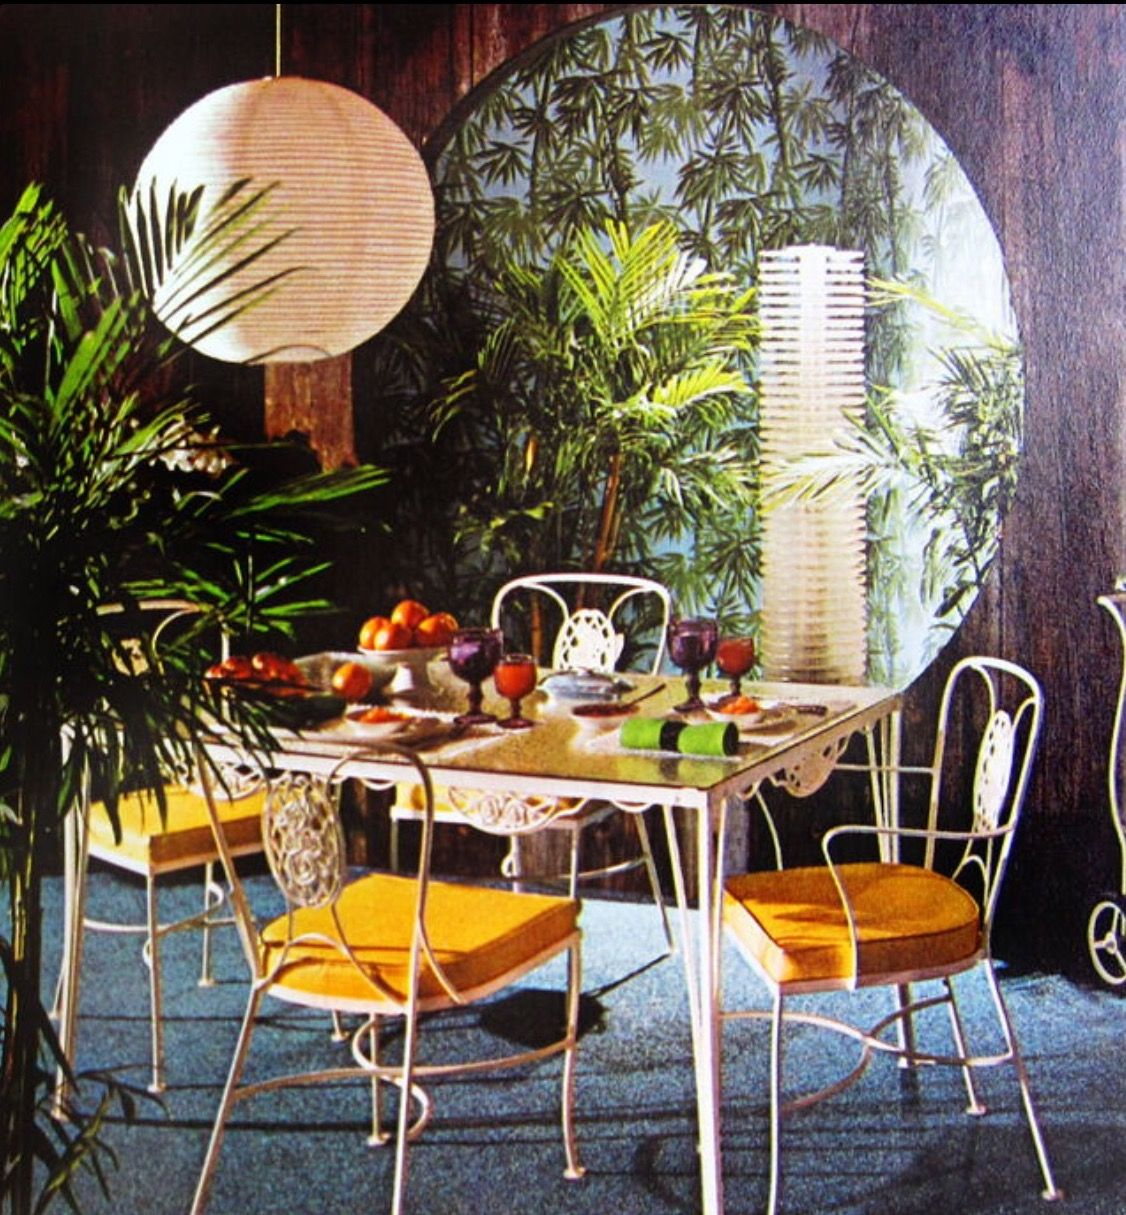 Midcentury tropical mood midcentury tropical mood vintage interior design